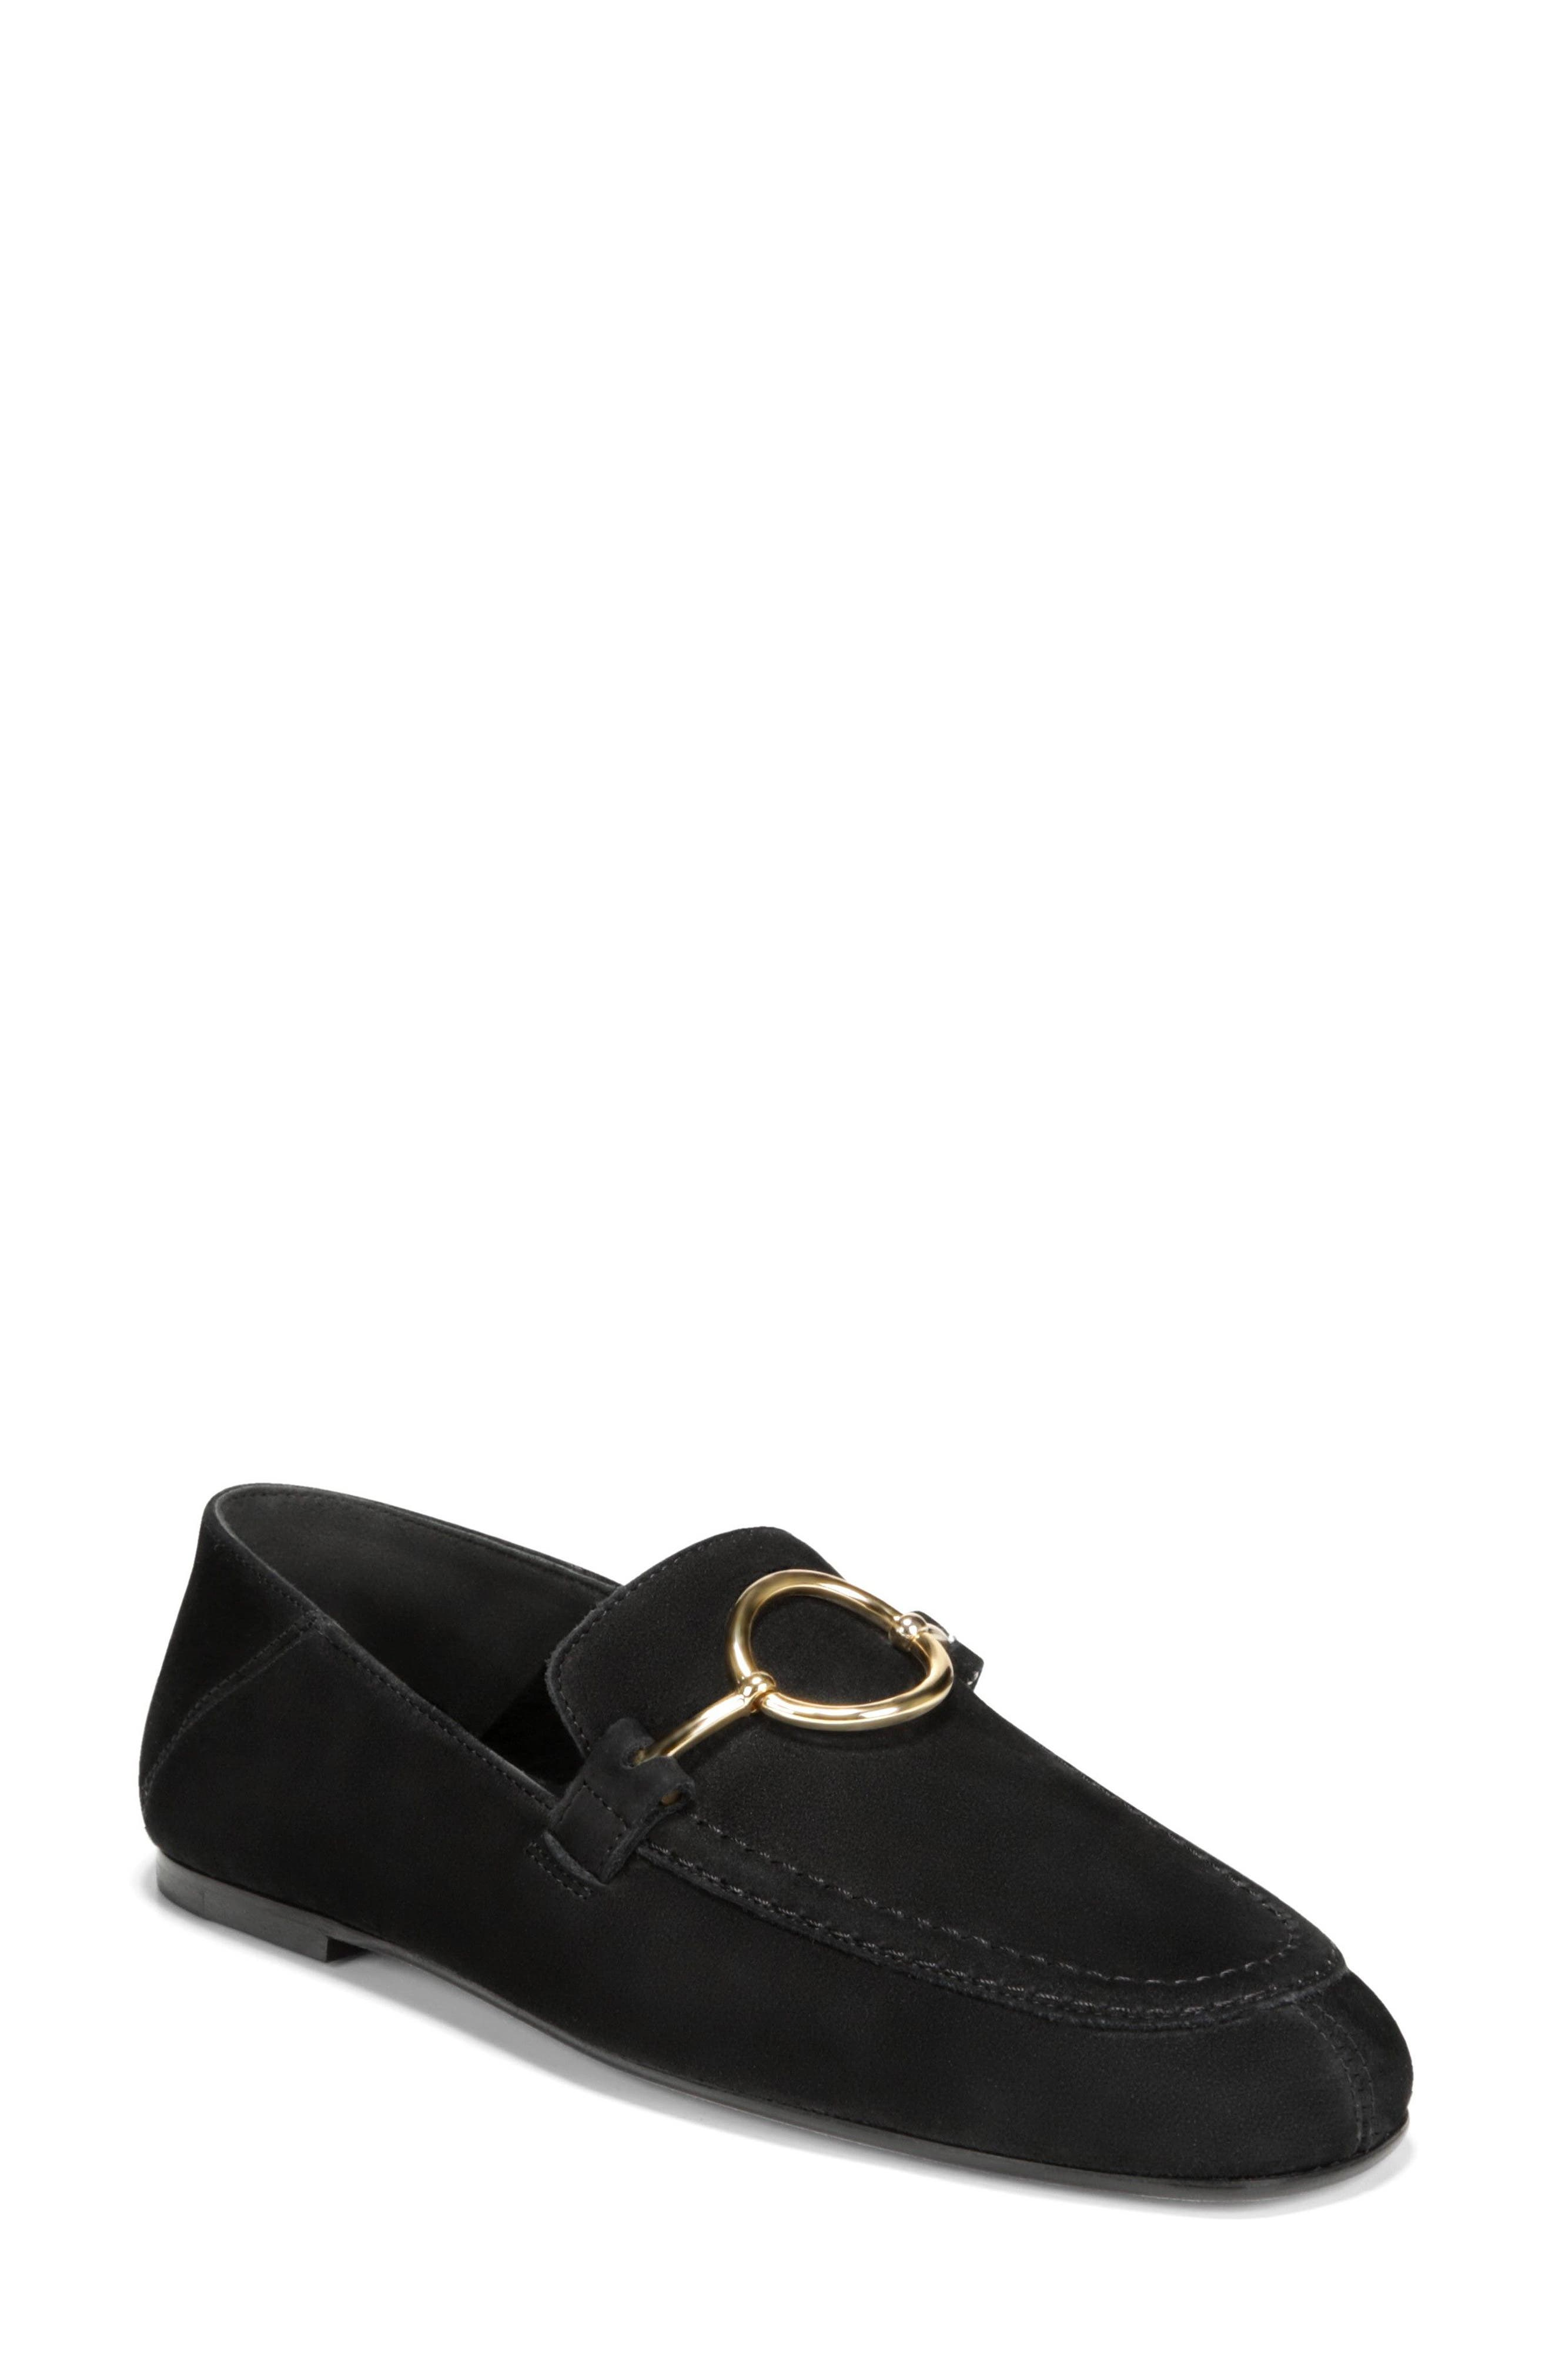 Abby Loafer,                         Main,                         color, BLACK NUBUCK LEATHER